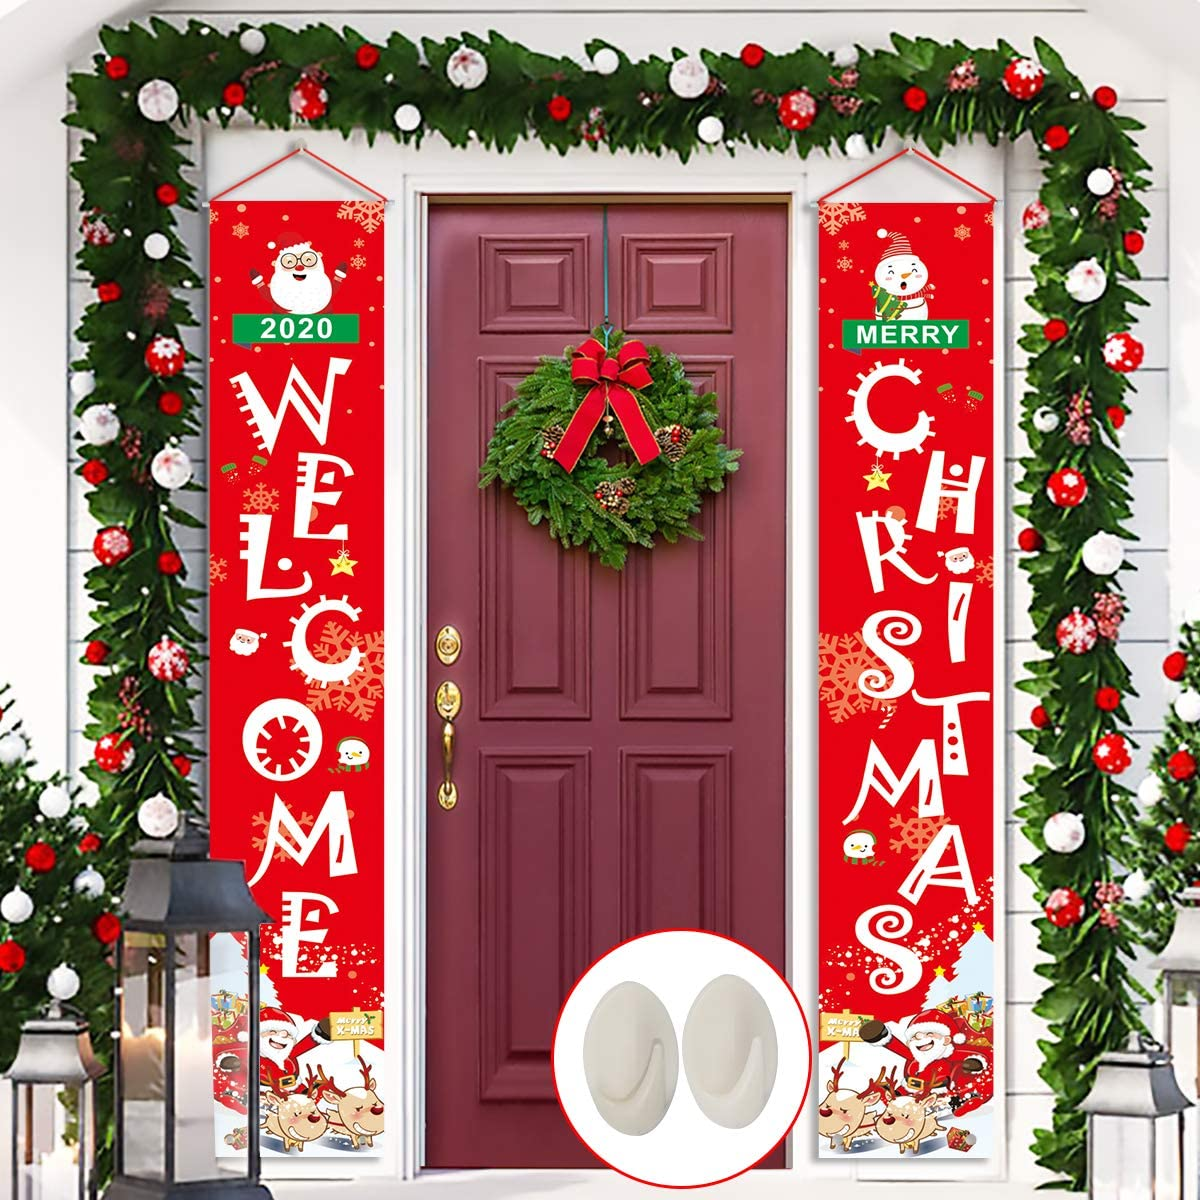 Merry Christmas Door Banner, Libay Large Size Front Door Welcome Christmas Porch Sign Hanging Xmas Banners for Outdoor Indoor Home Wall Decorations Holiday Party Decor